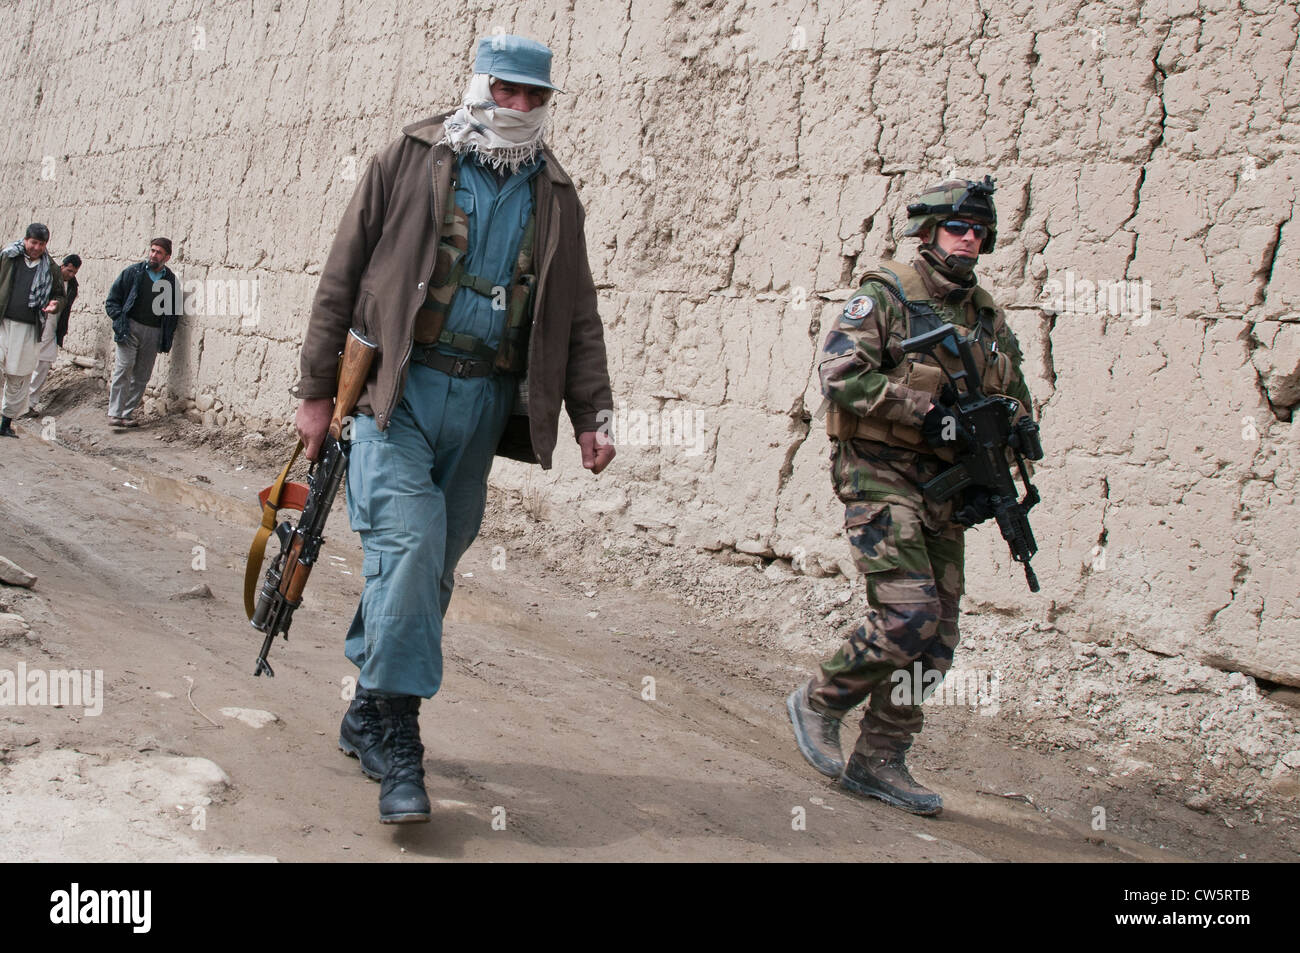 An Afghan policeman and French military policeman from joint forces patrol around compounds during their mission - Stock Image